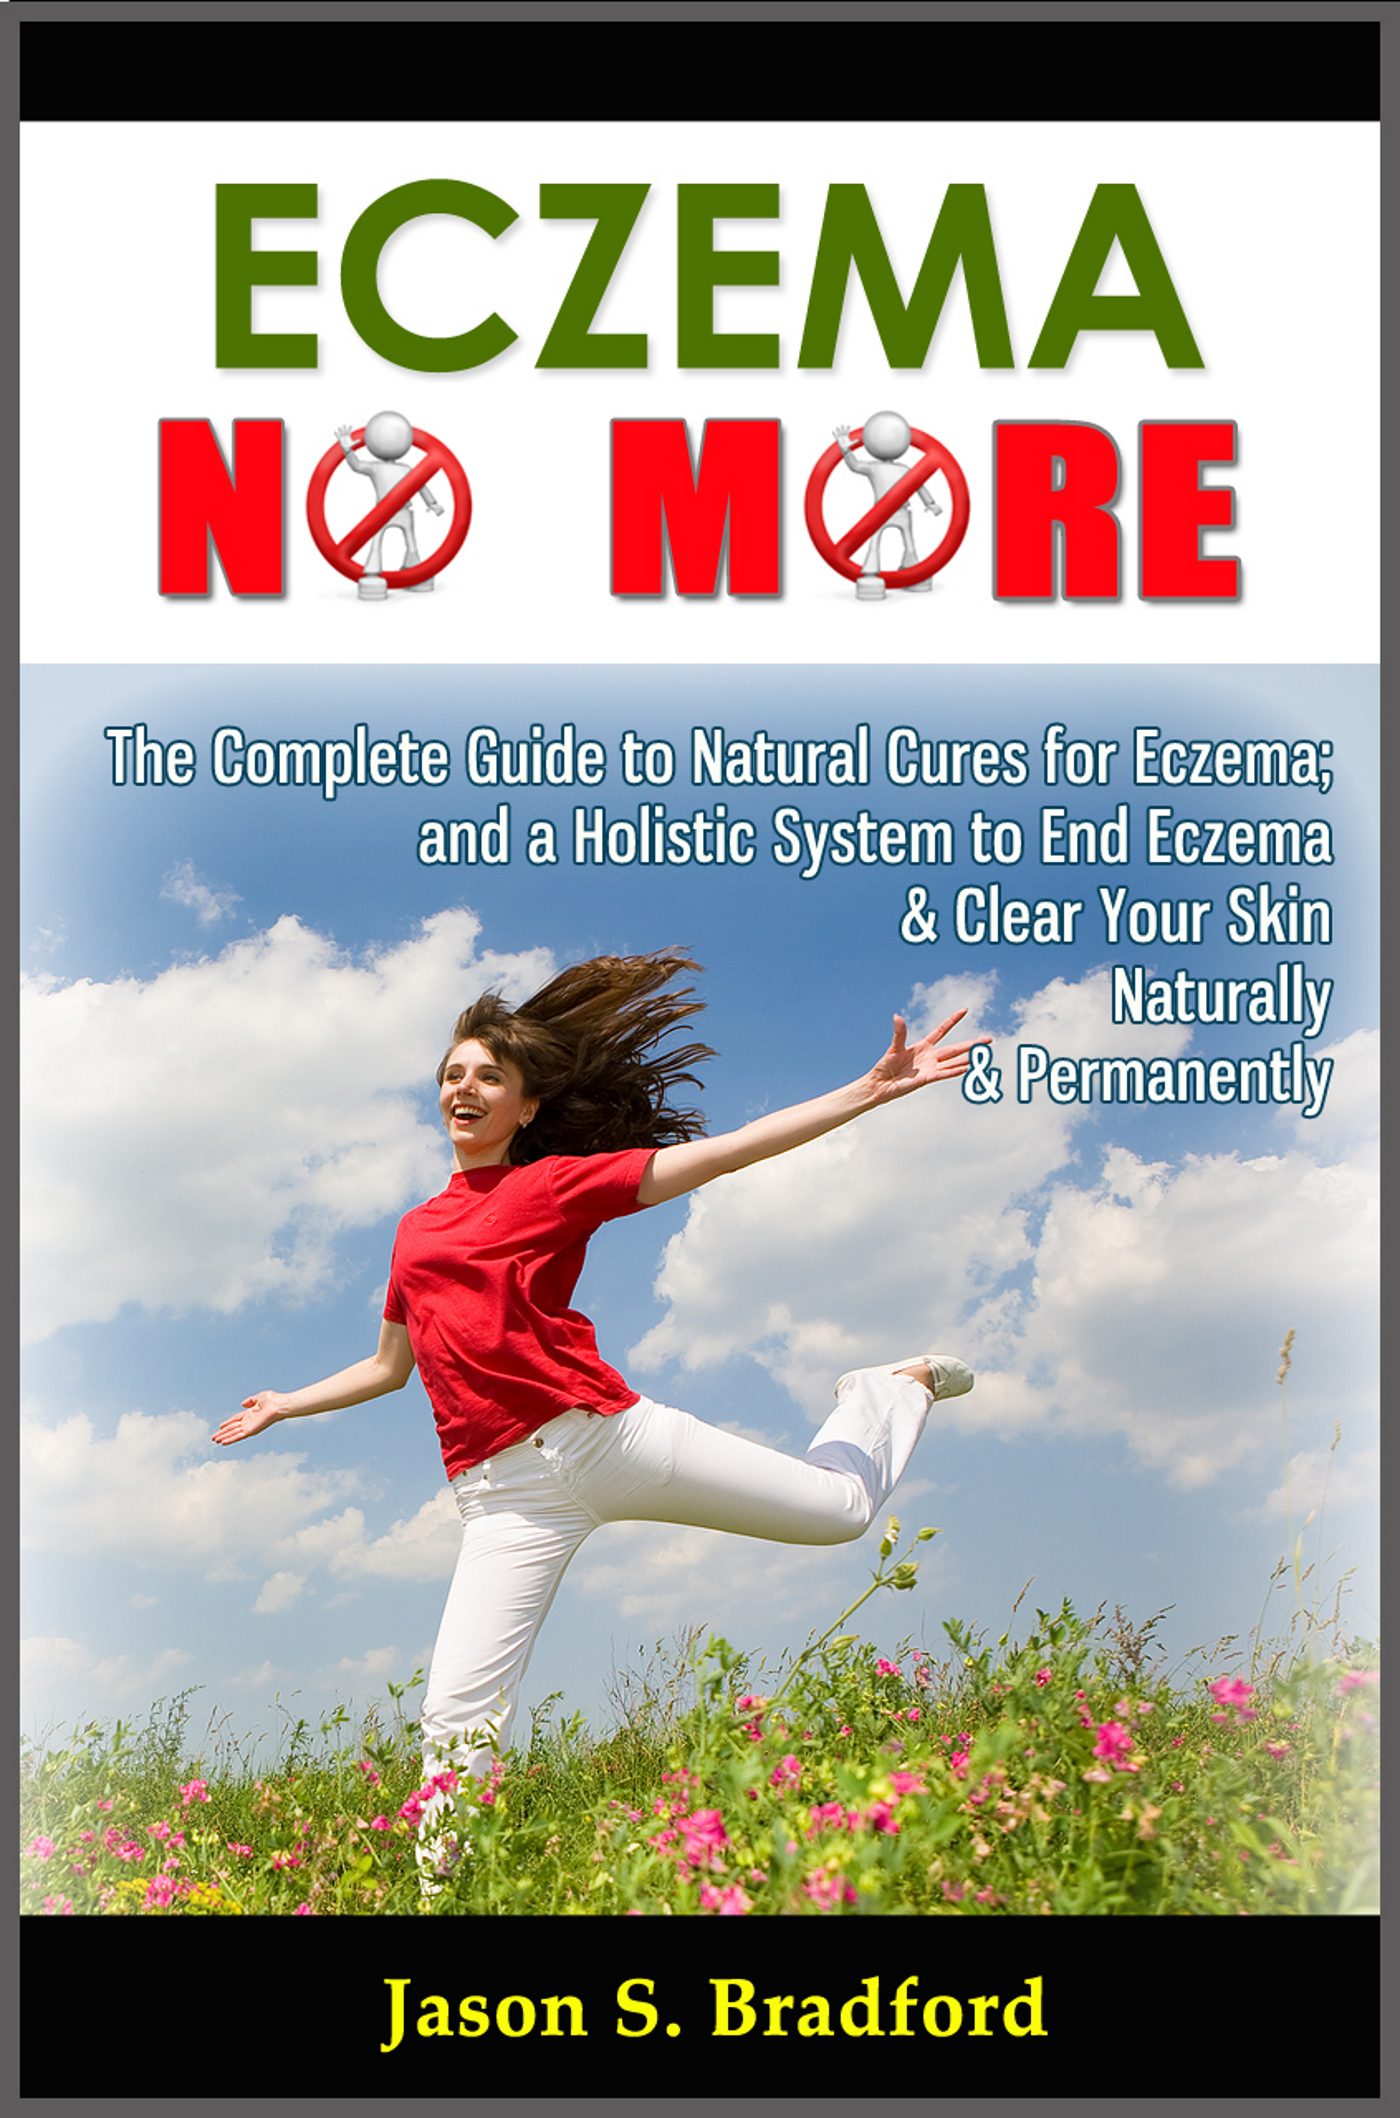 Eczema No More: The Complete Guide to Natural Cures for Eczema and a Holistic System to End Eczema & Clear Your Skin Naturally & Permanently